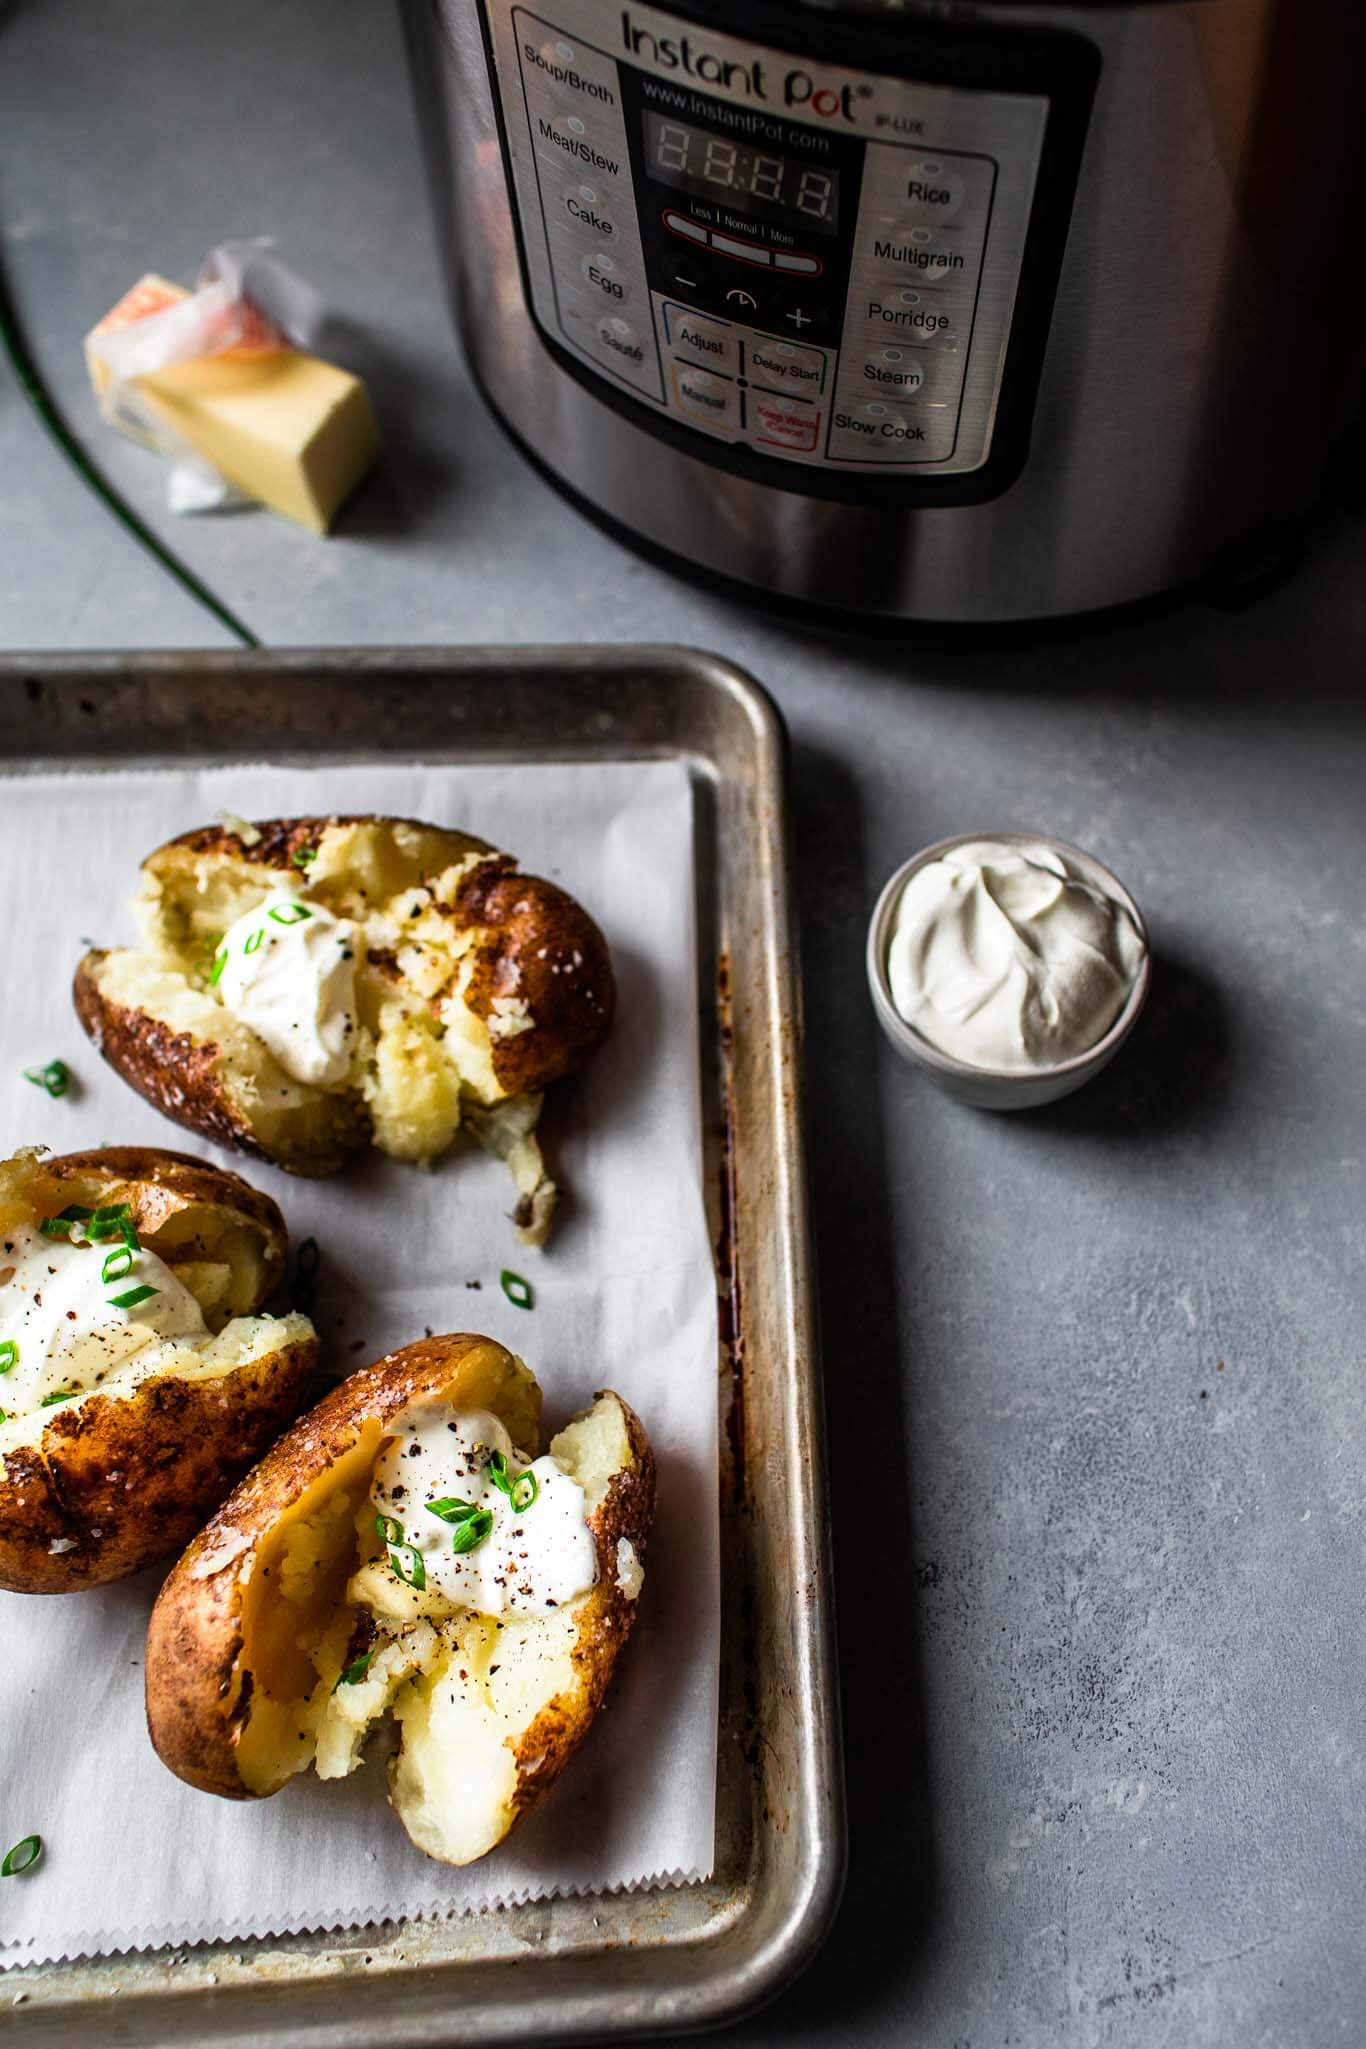 Baked potatoes on baking sheet next to instant pot.